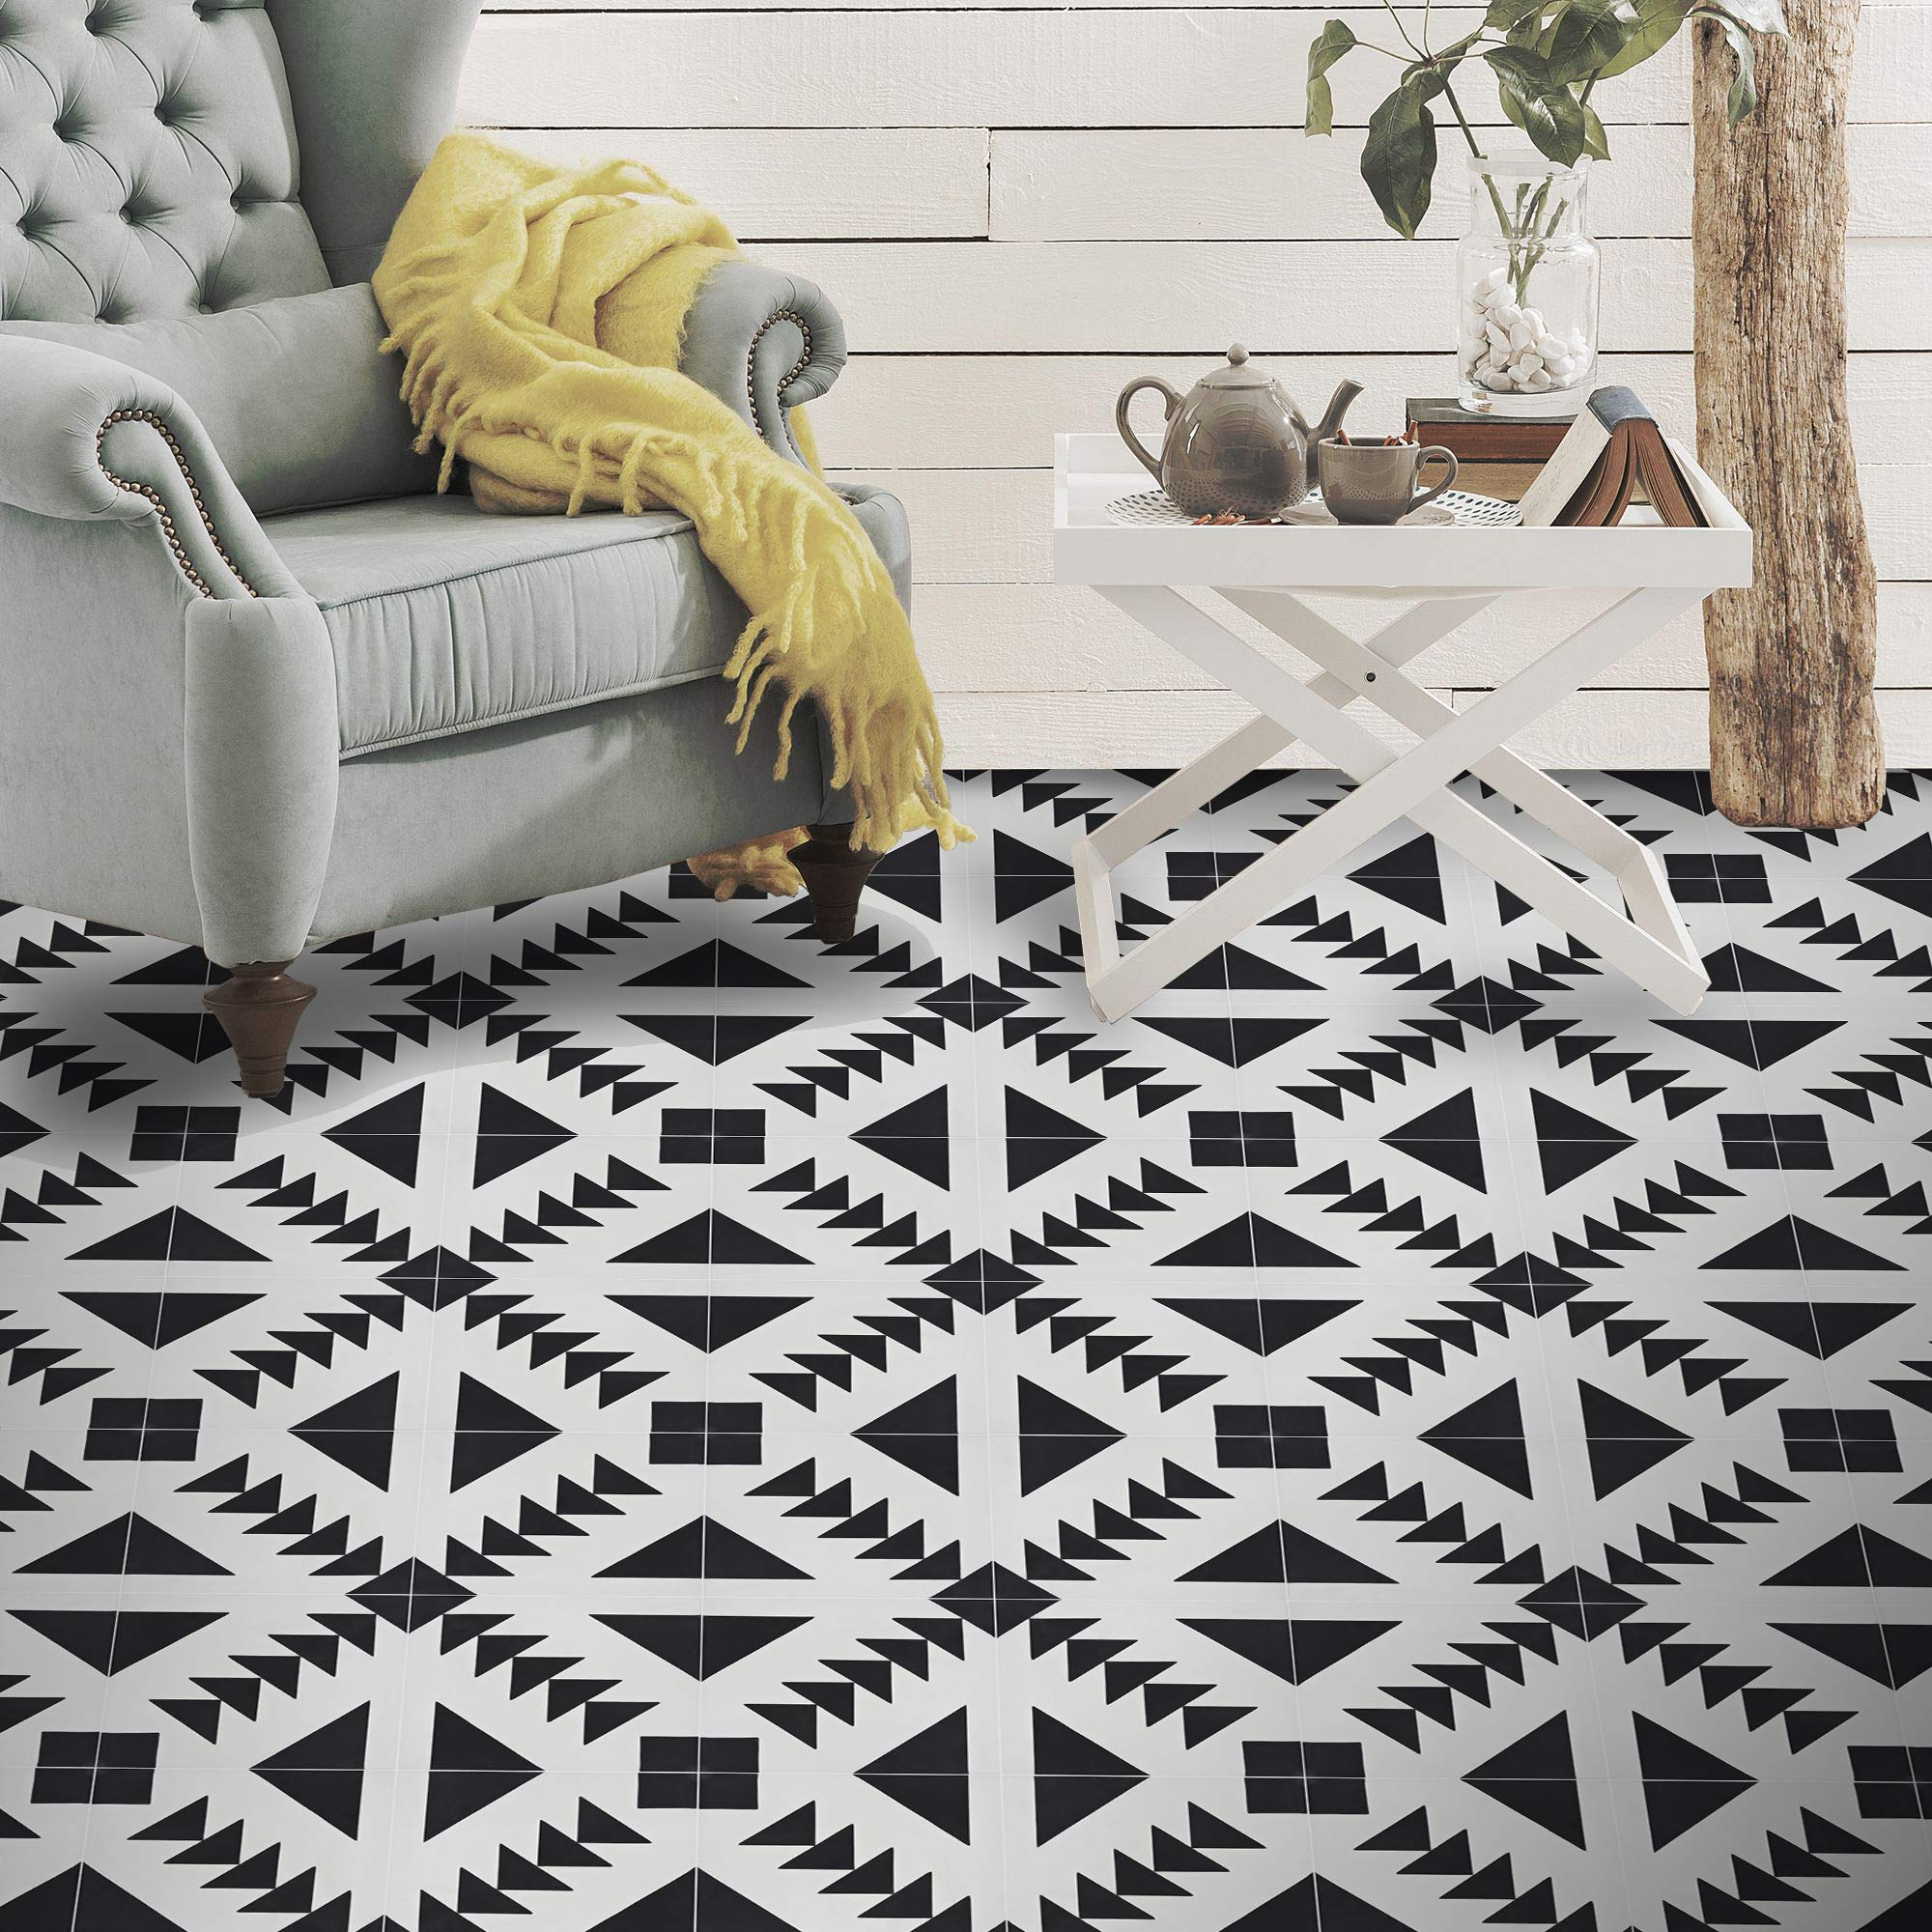 Moroccan Mosaic & Tile House CTP60-01 Tadla Handmade Cement Tile in Black and White, Pack of 12 8''x8'', by Moroccan Mosaic & Tile House